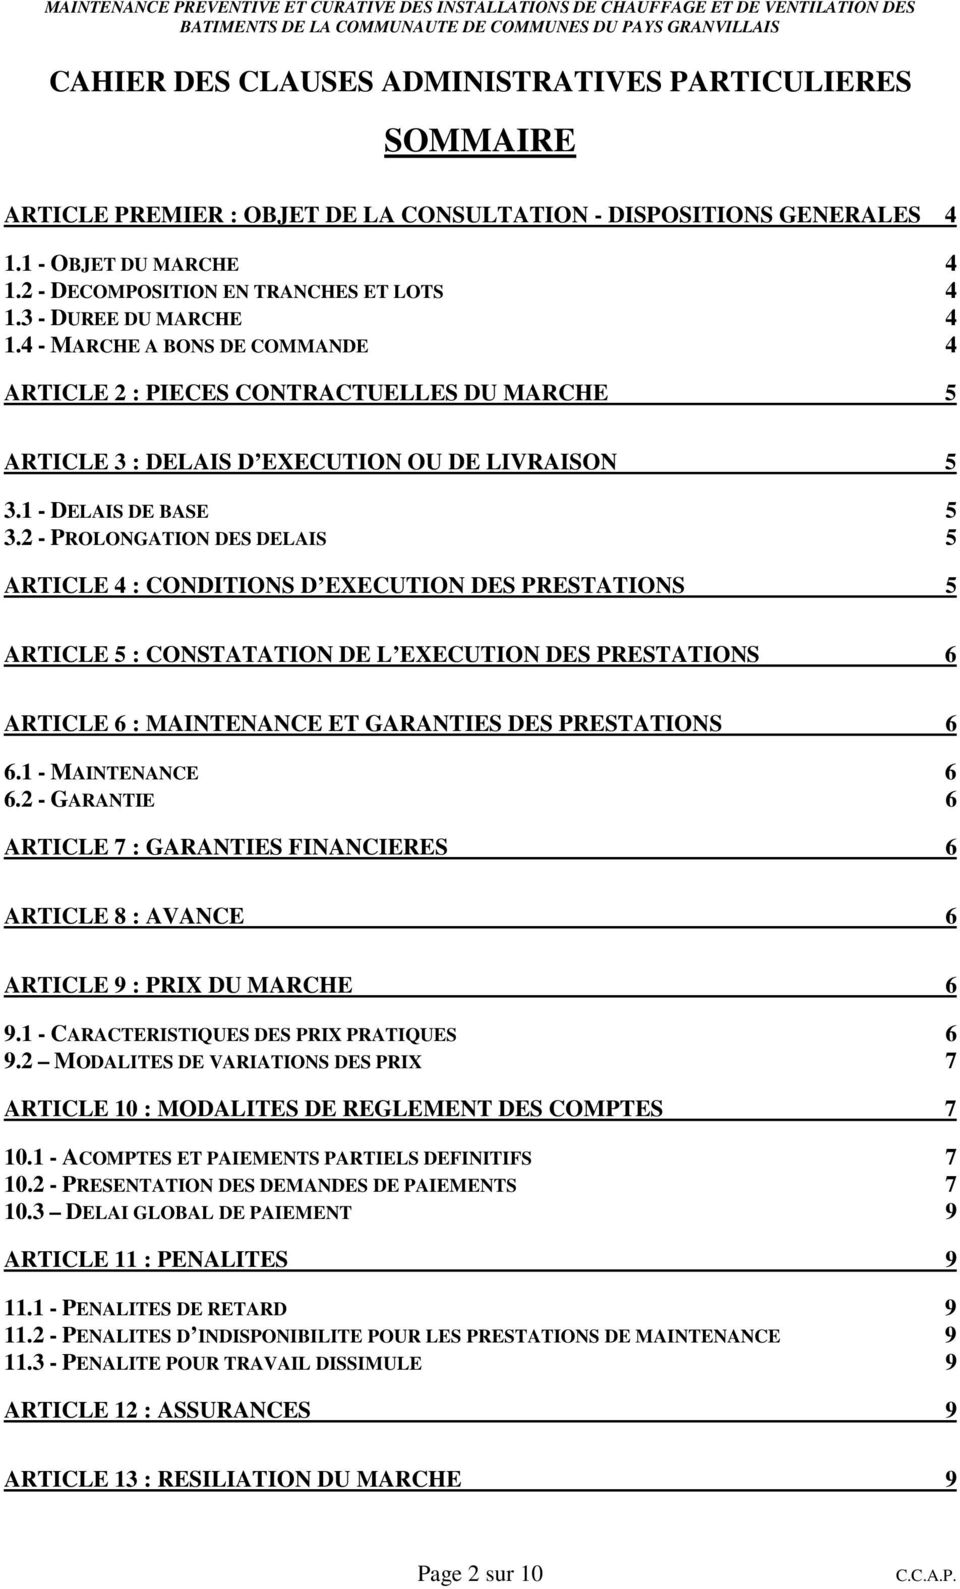 2 - PROLONGATION DES DELAIS 5 ARTICLE 4 : CONDITIONS D EXECUTION DES PRESTATIONS 5 ARTICLE 5 : CONSTATATION DE L EXECUTION DES PRESTATIONS 6 ARTICLE 6 : MAINTENANCE ET GARANTIES DES PRESTATIONS 6 6.